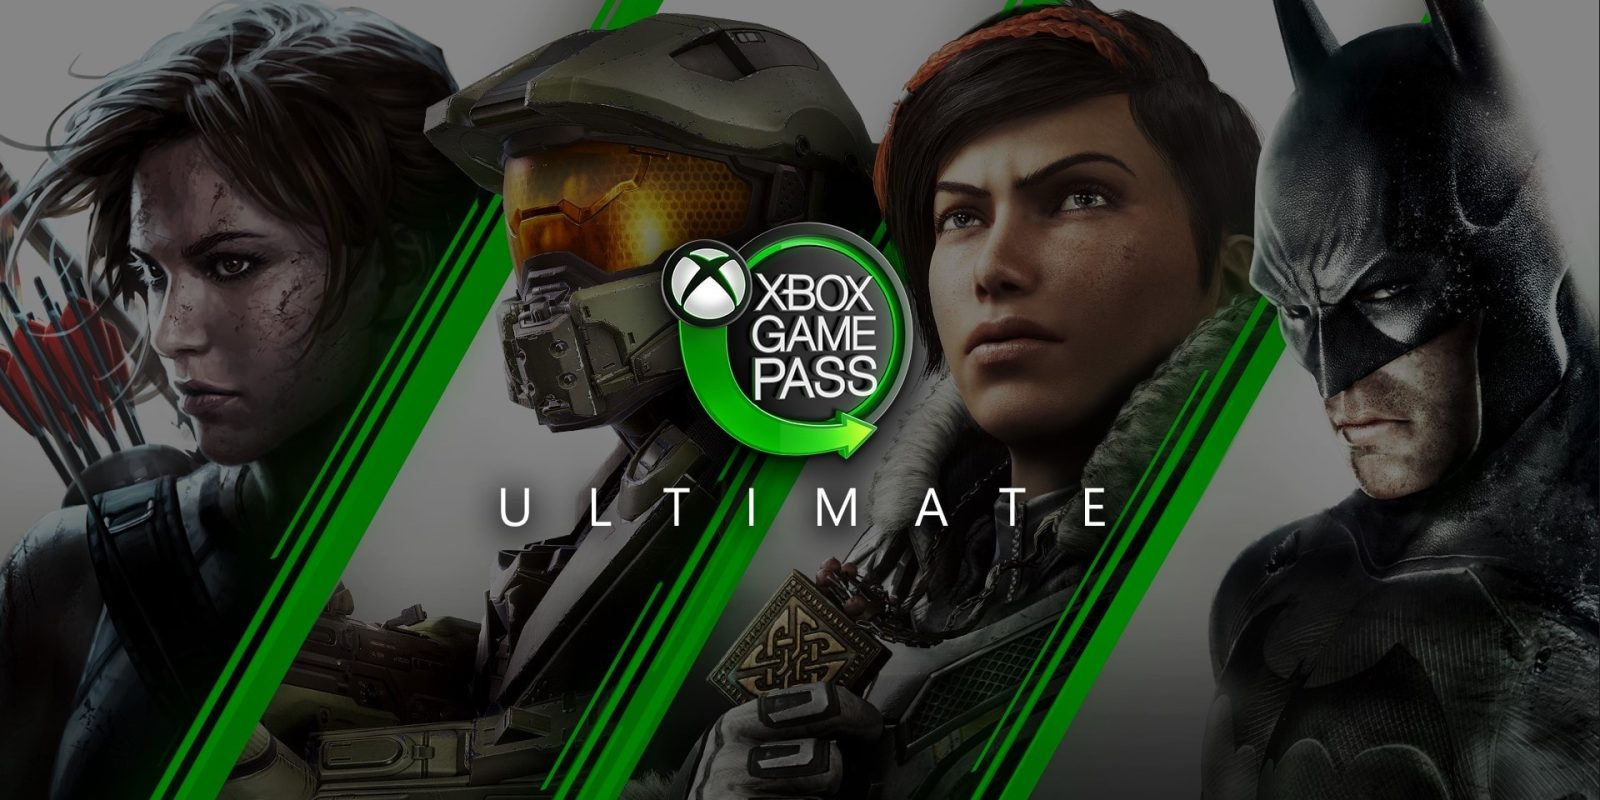 Extend your Xbox Game Pass Ultimate sub by 3 months for $20 (Reg. $45)